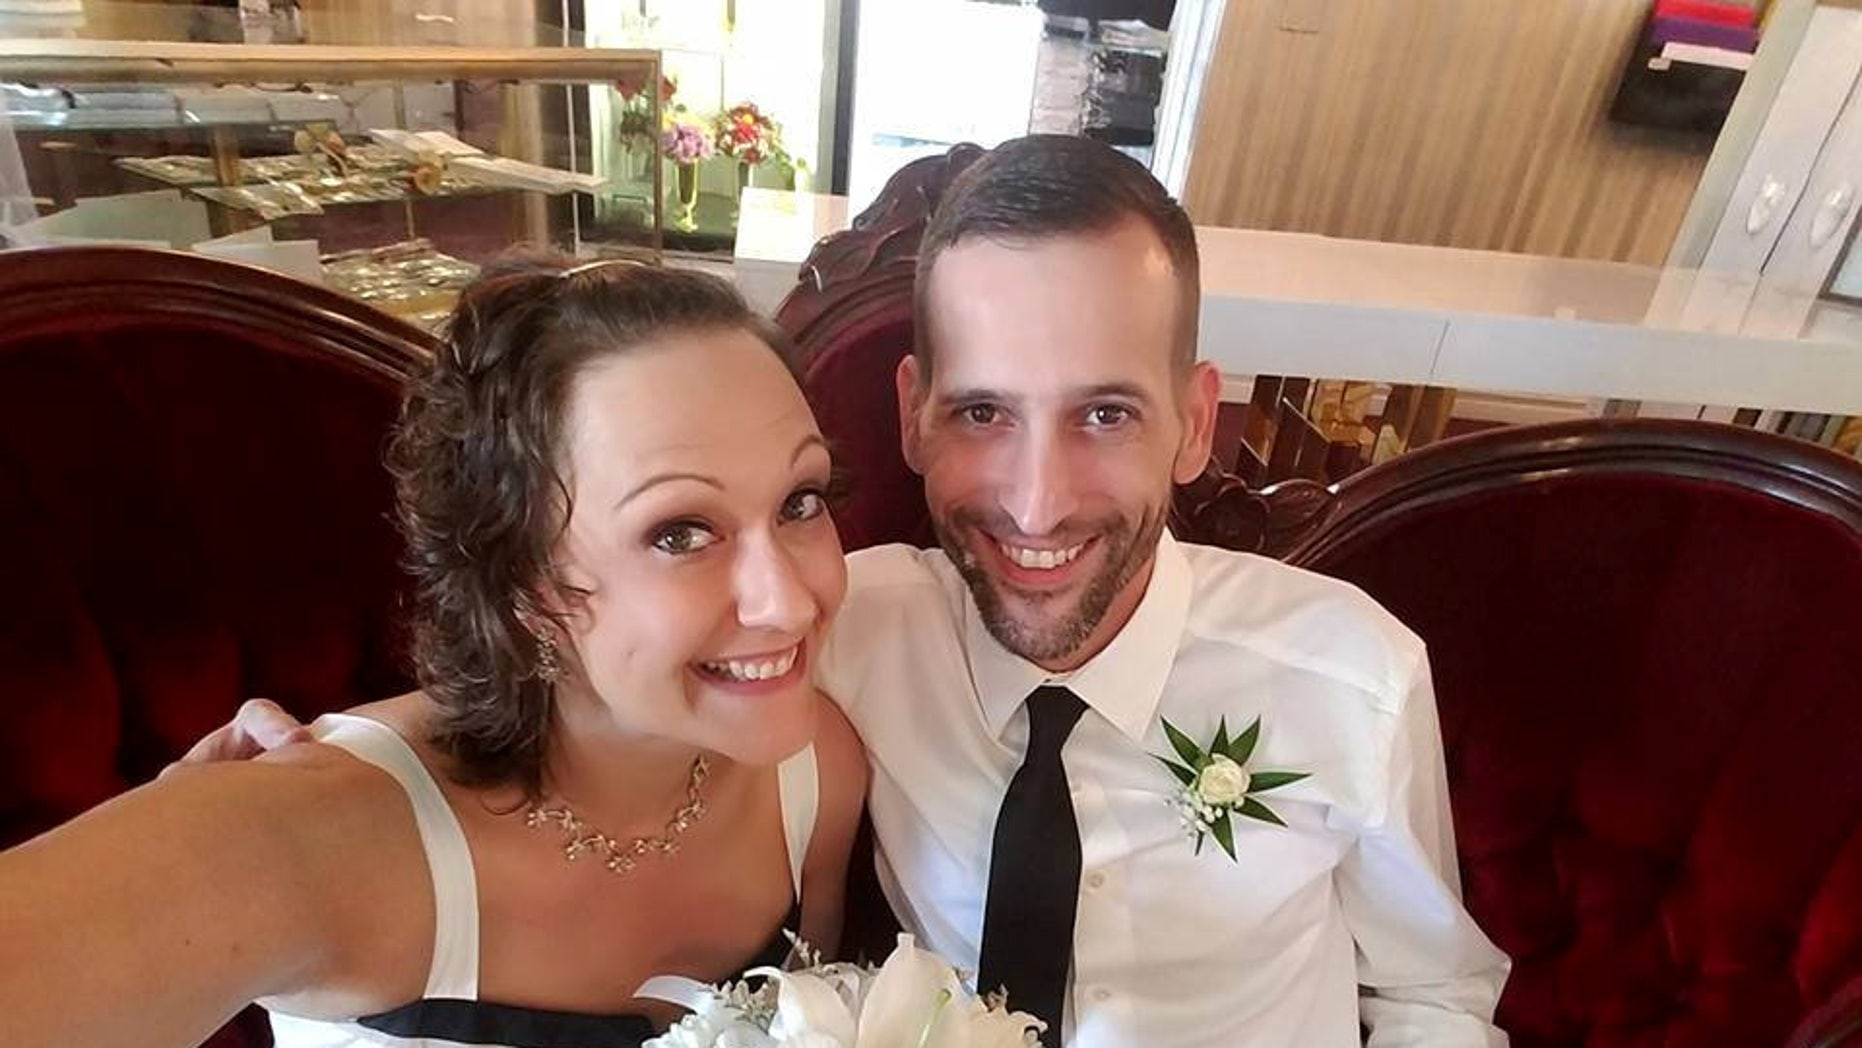 Michelle and Brian, pictured at their vow renewals in Las Vegas 2017, said that their dual cancer diagnoses have made their relationship stronger.